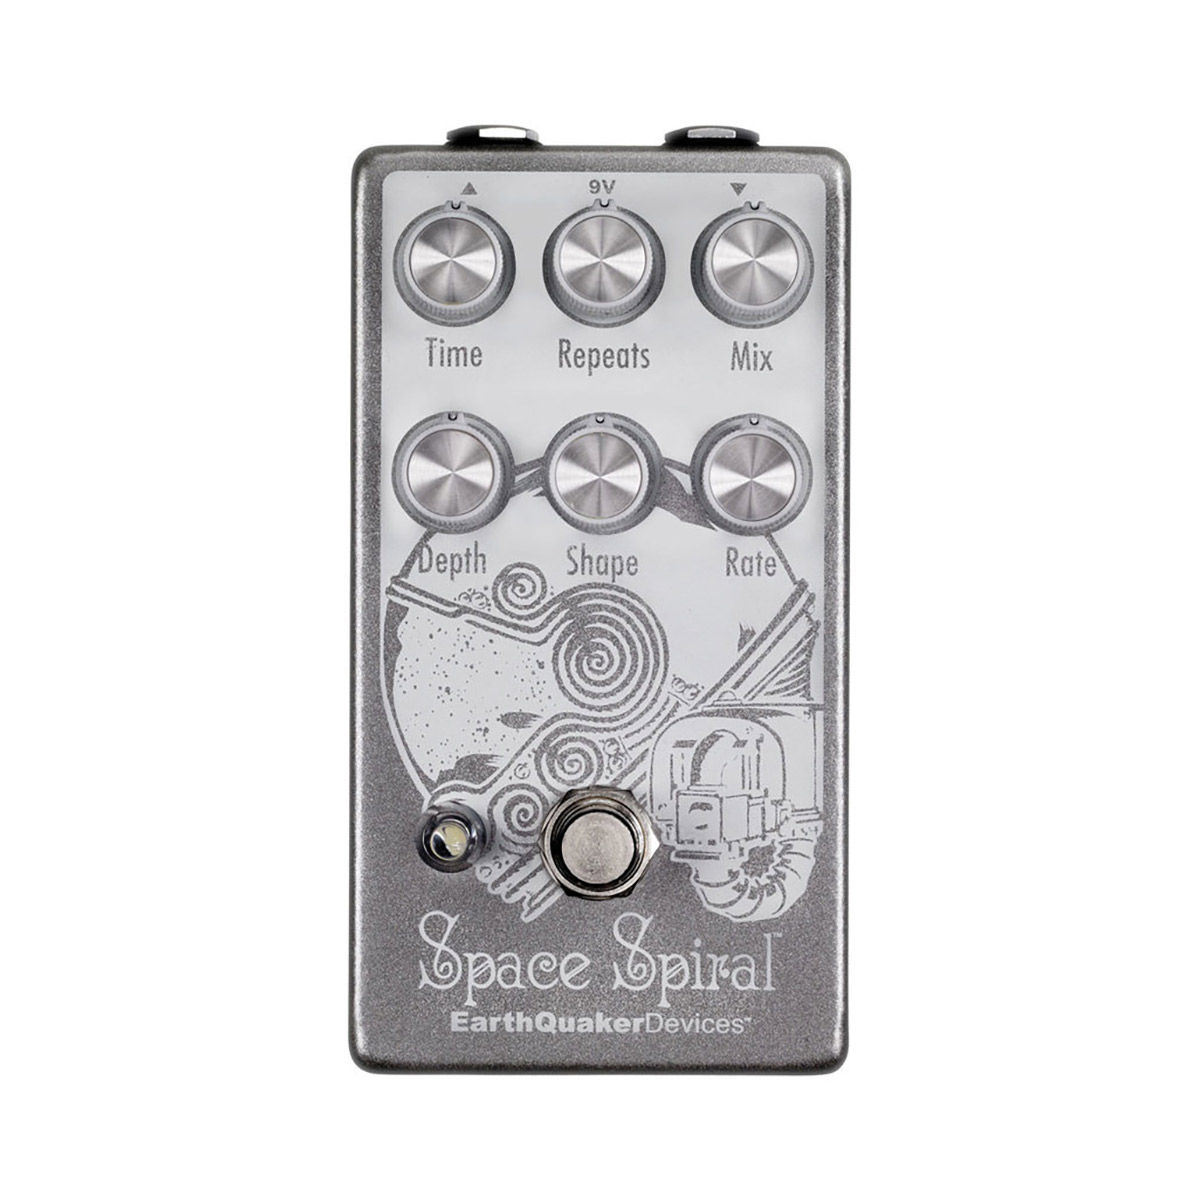 EarthQuaker Devices Space Spiral コンパクトエフェクター モジュレーションディレイ 【アースクエイカーデバイス】